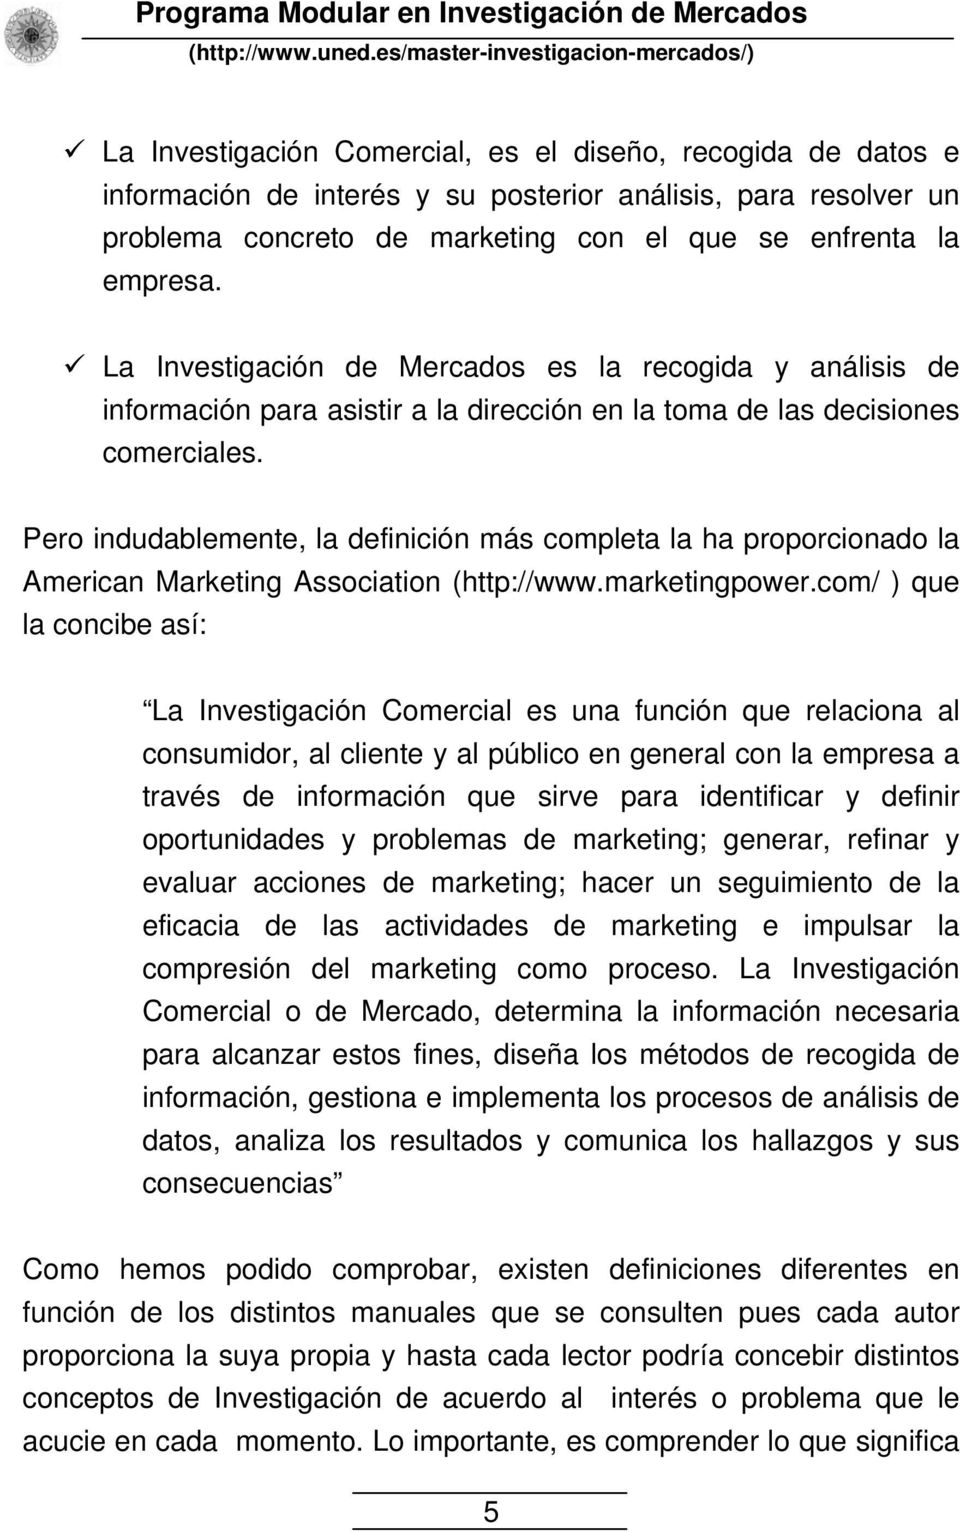 Pero indudablemente, la definición más completa la ha proporcionado la American Marketing Association (http://www.marketingpower.